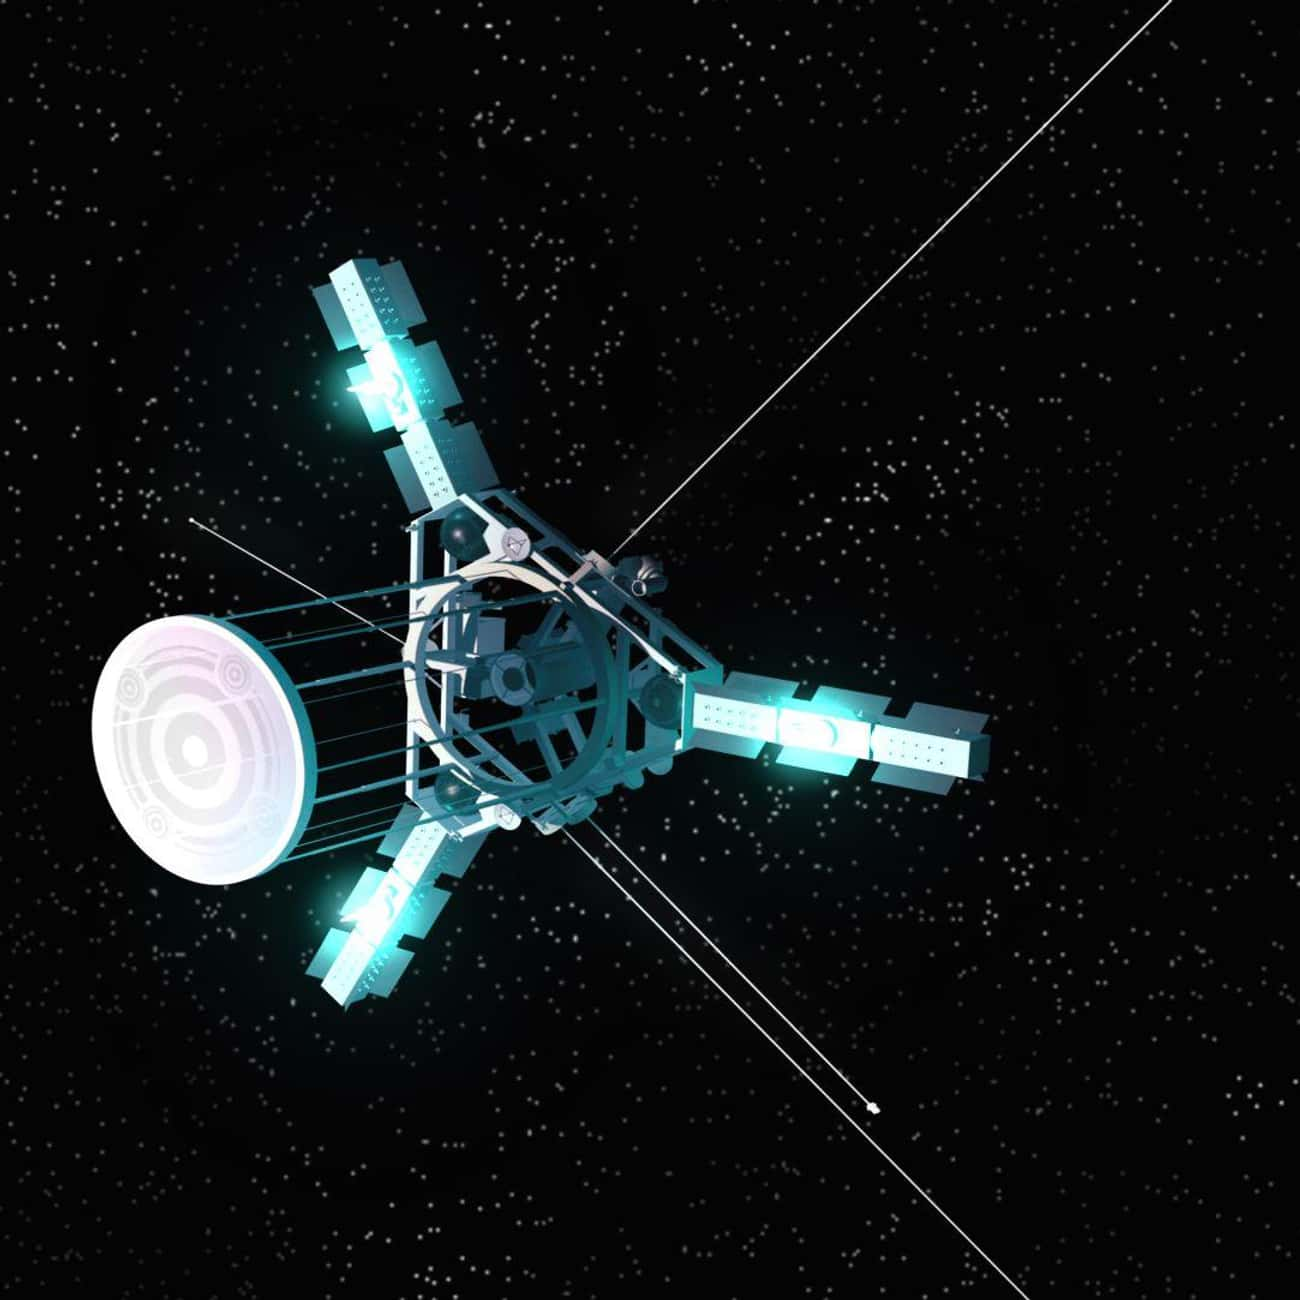 It Could Be A Bracewell Probe is listed (or ranked) 3 on the list Creepy Stories and Theories About the Black Knight Satellite